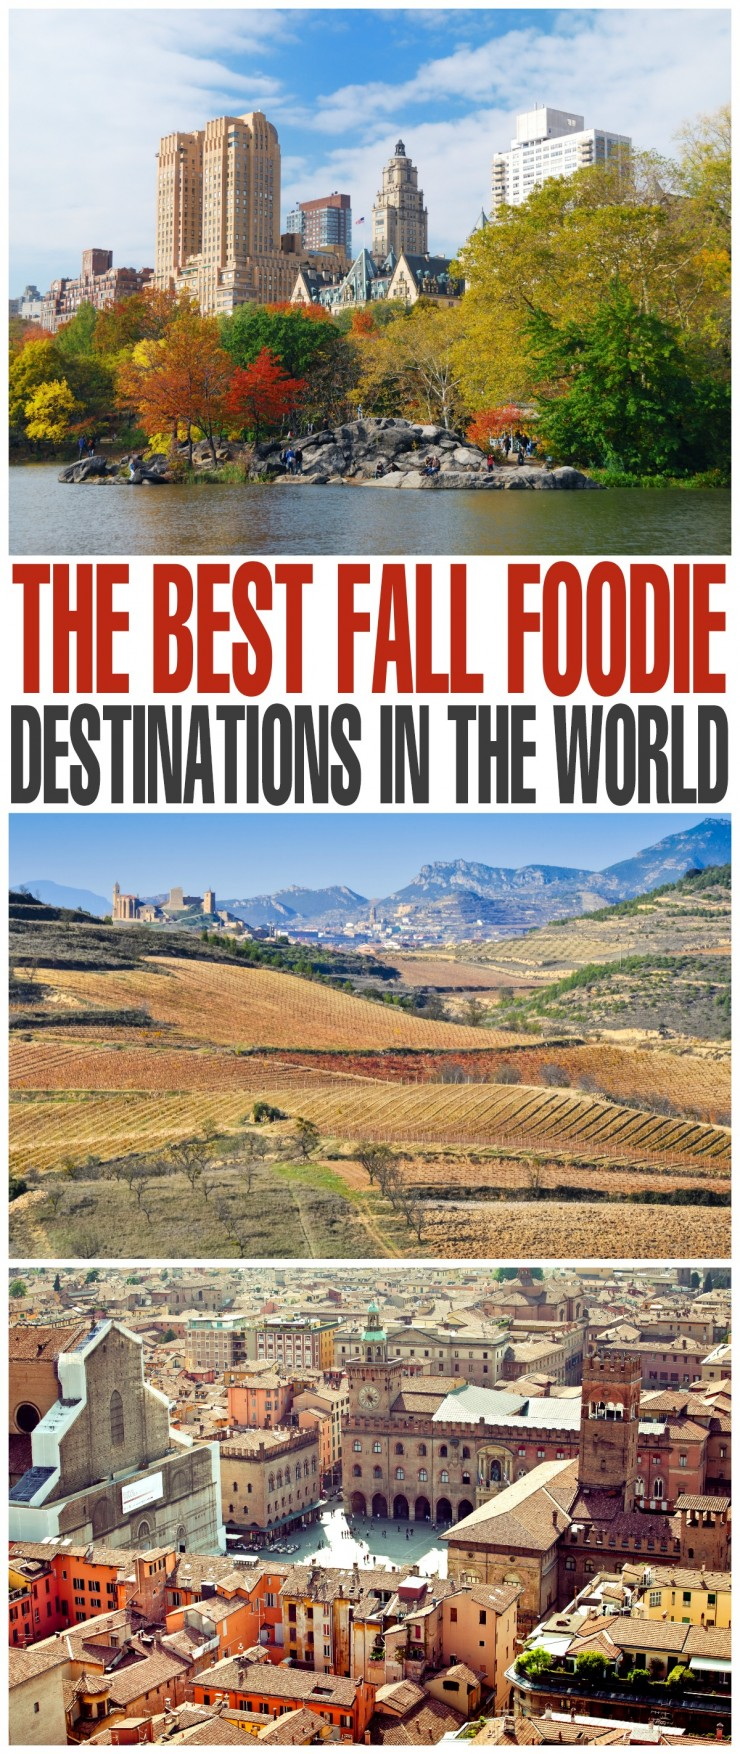 There are several foodie destinations in the world you should visit over the fall months as the menu chances with the seasons. These destinations are worth a trip for the meals alone.